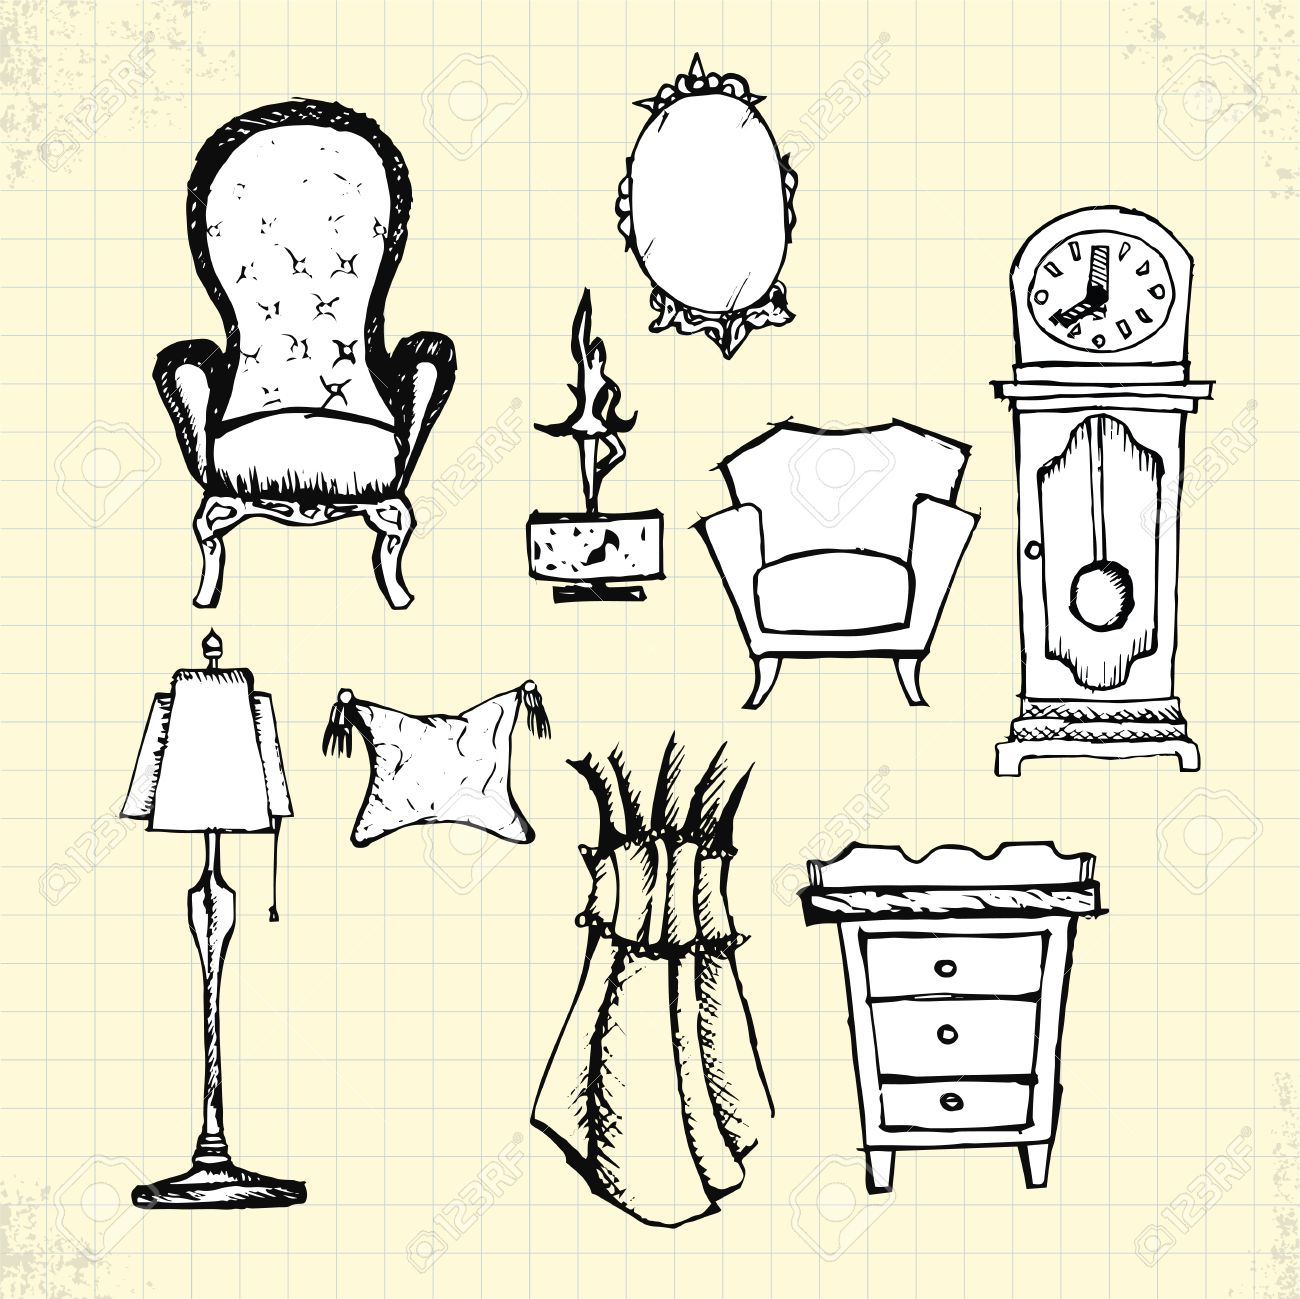 Antique chair drawing - Doodle Antique Furniture On Paper Vector Drawing Stock Vector 30118637